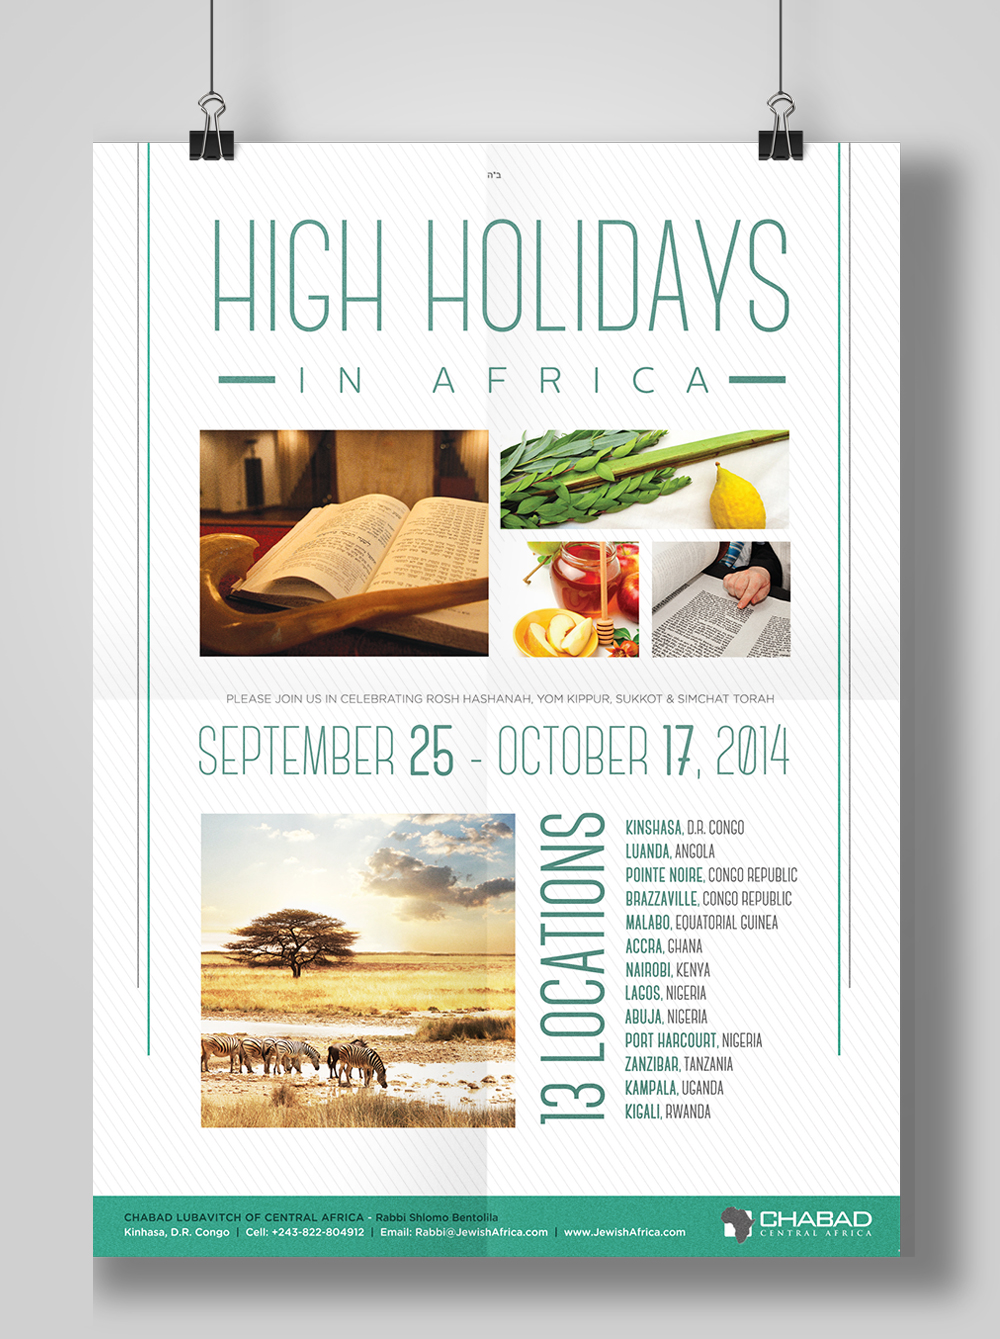 High Holidays - Chabad Central Africa